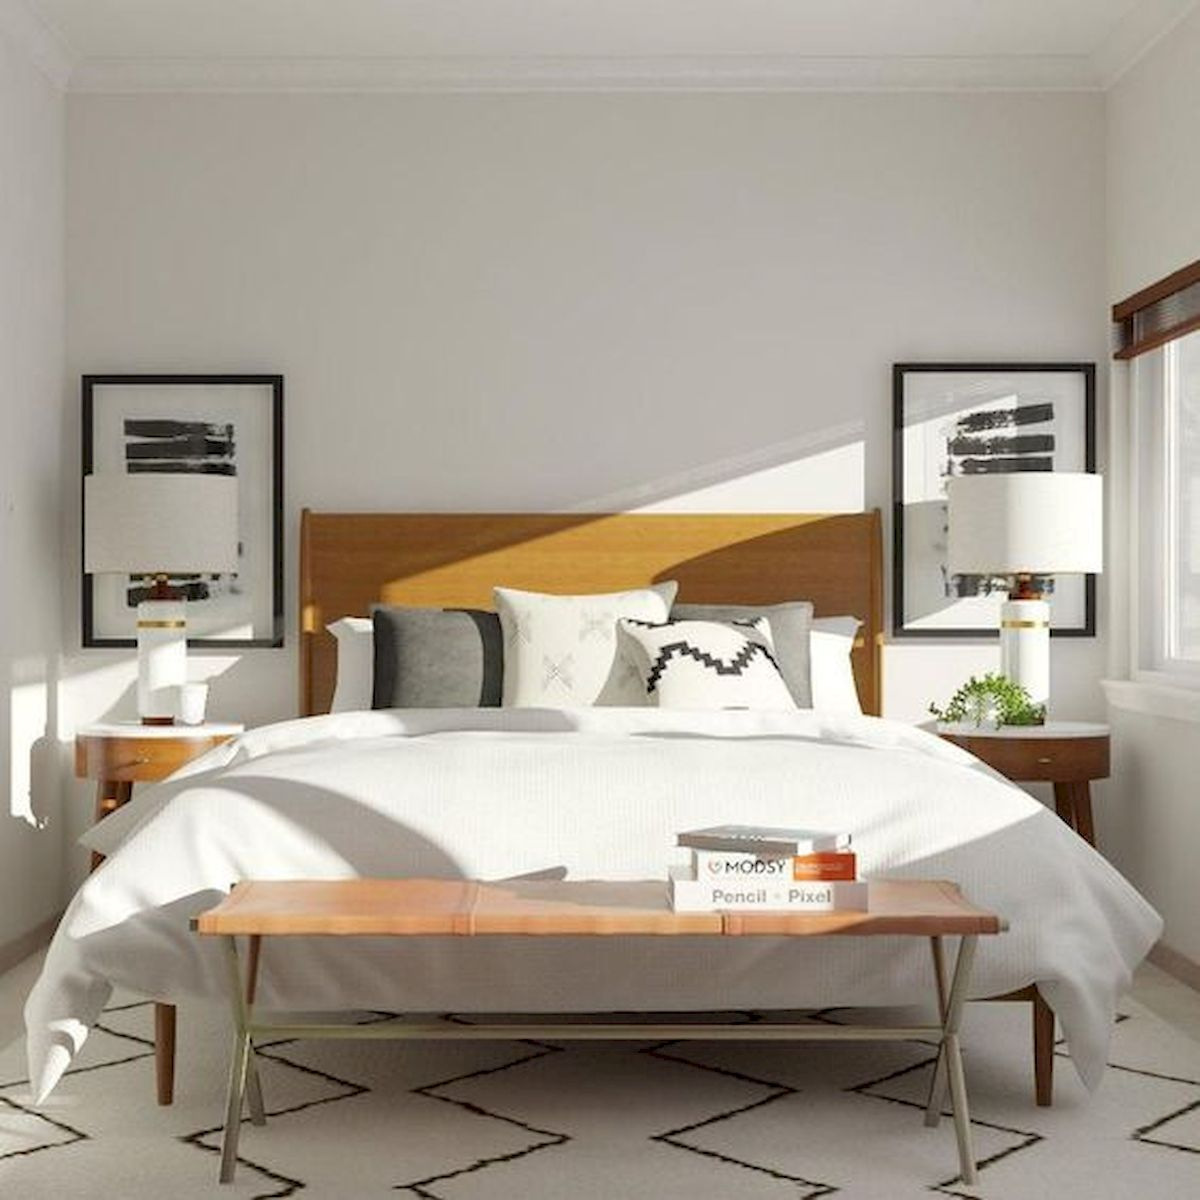 40 Incredible Modern Bedroom Design Ideas That Will Be Relax Place (26)